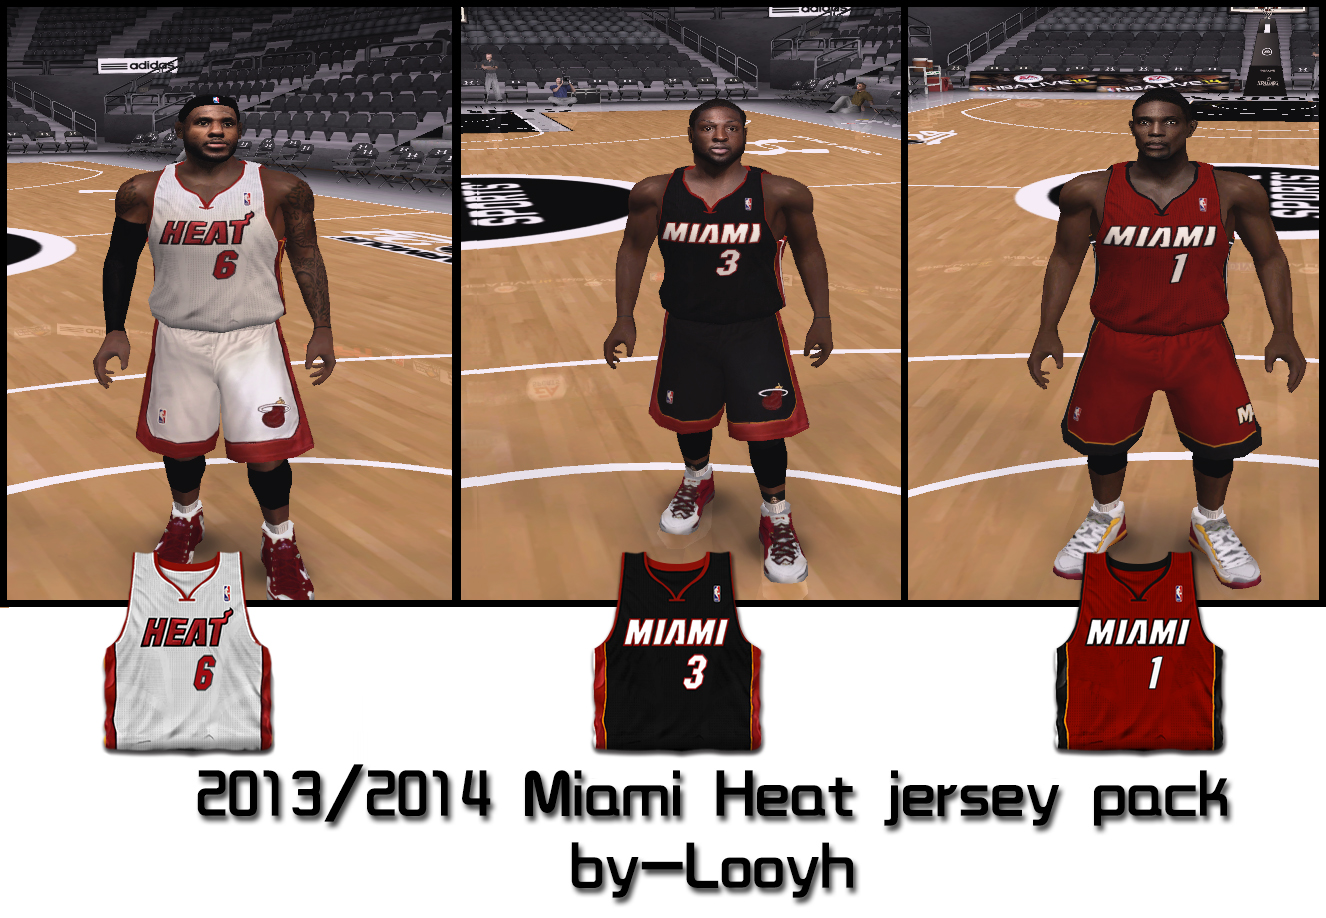 Miami Heat 2013/2014 Jersey Pack